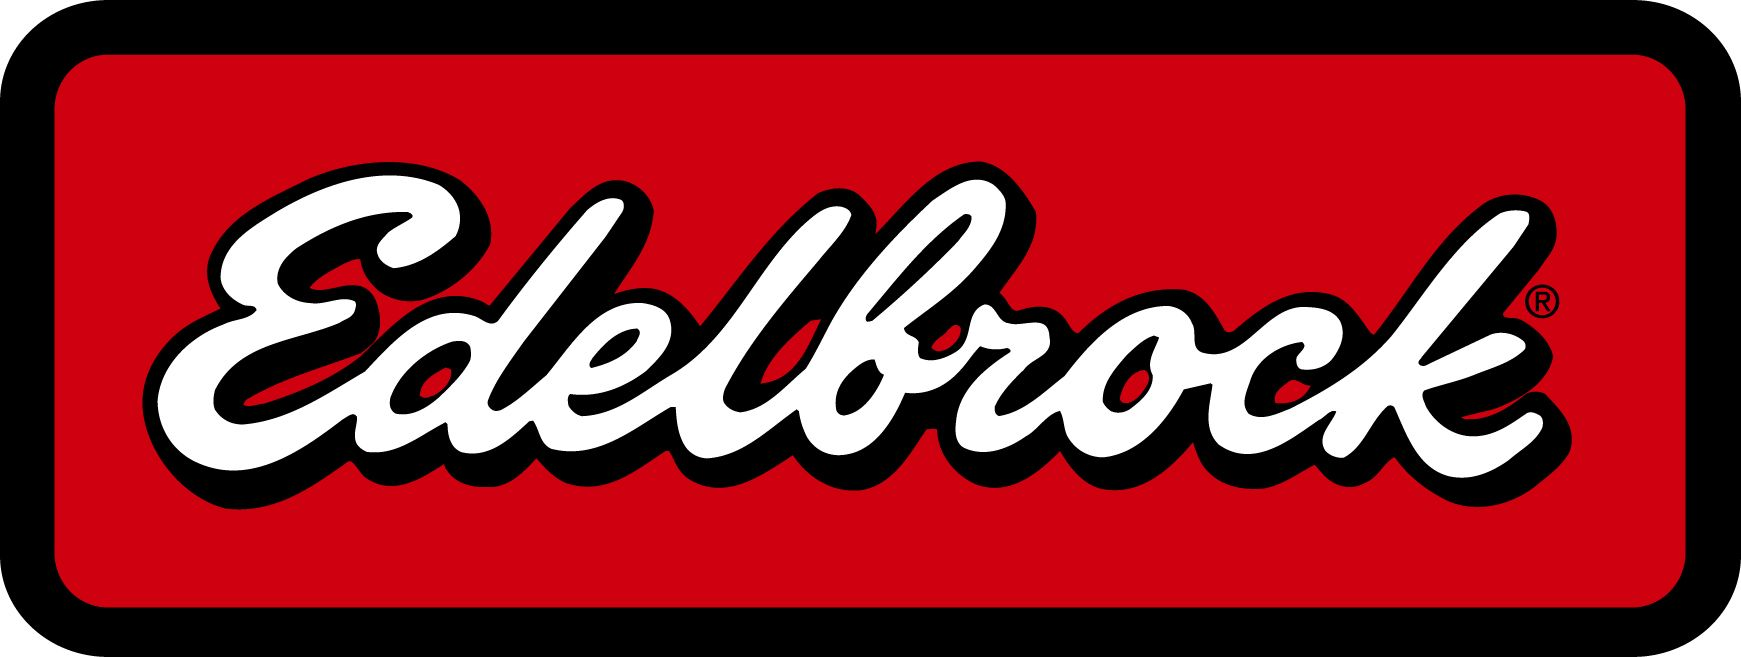 Edelbrock Some Of The Products We Carry Pinterest Logos Car